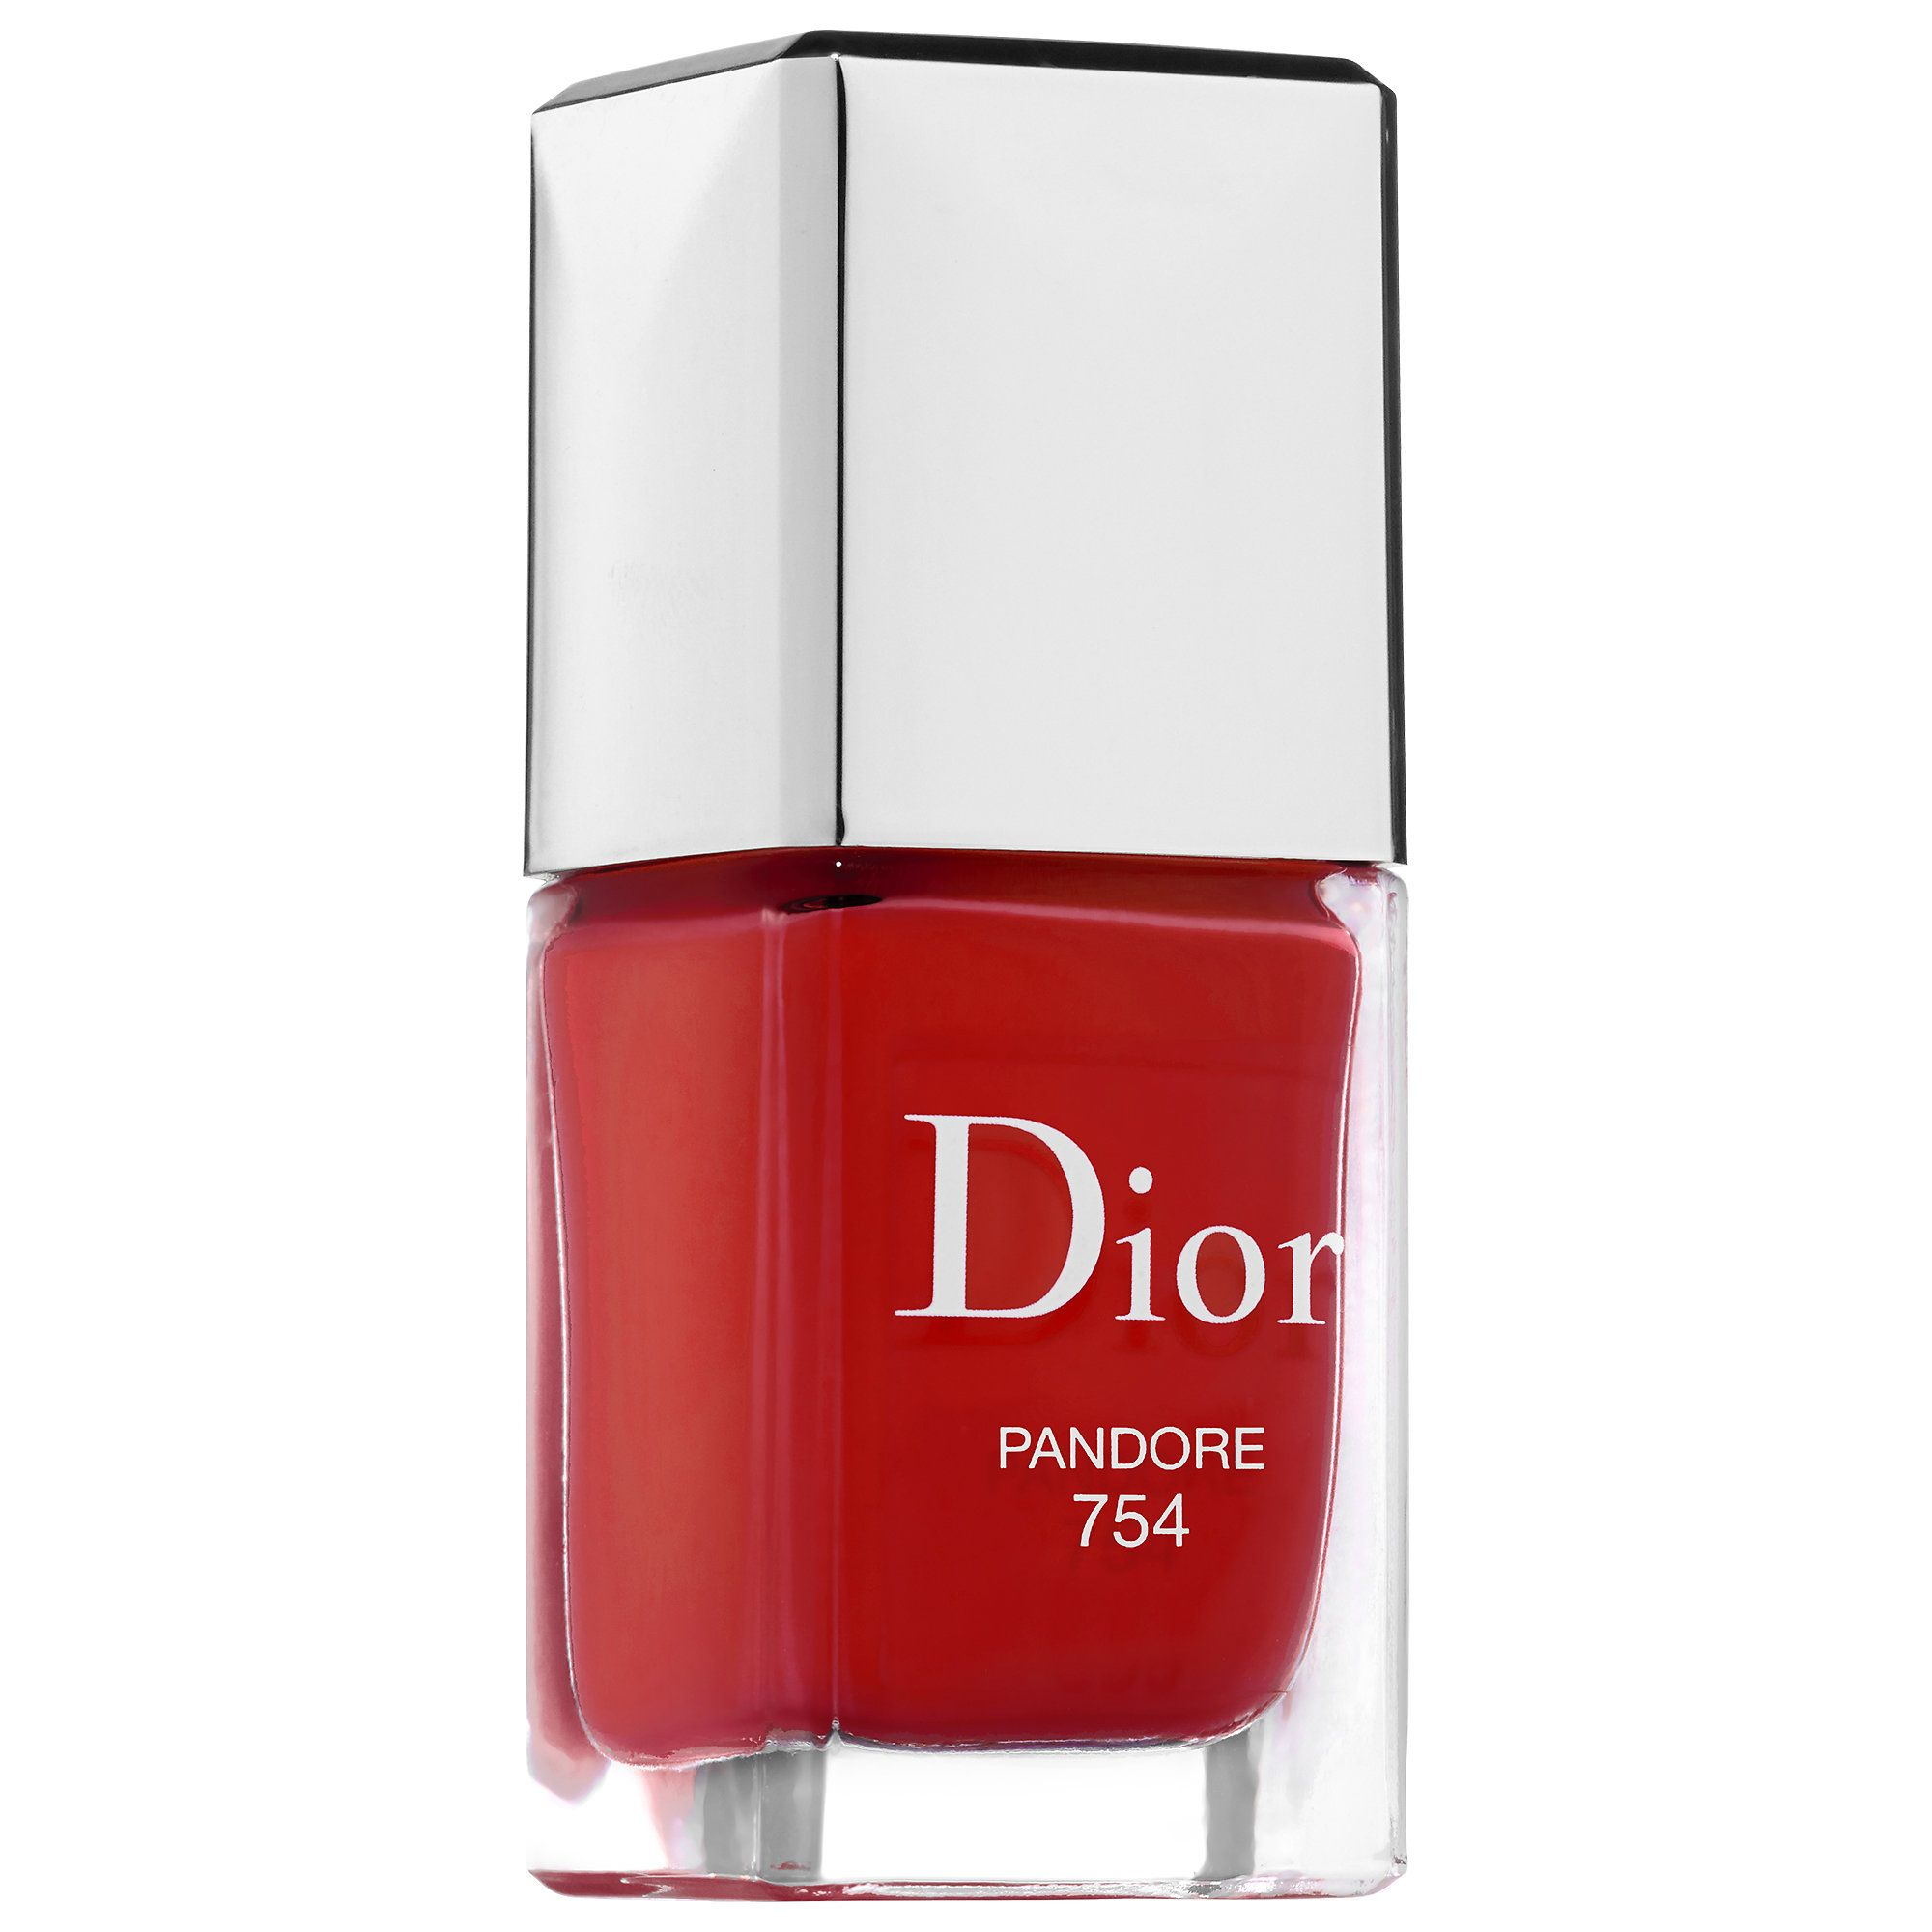 Dior Vernis Gel Shine and Long Wear Nail Lacquer - Dior | Sephora ...